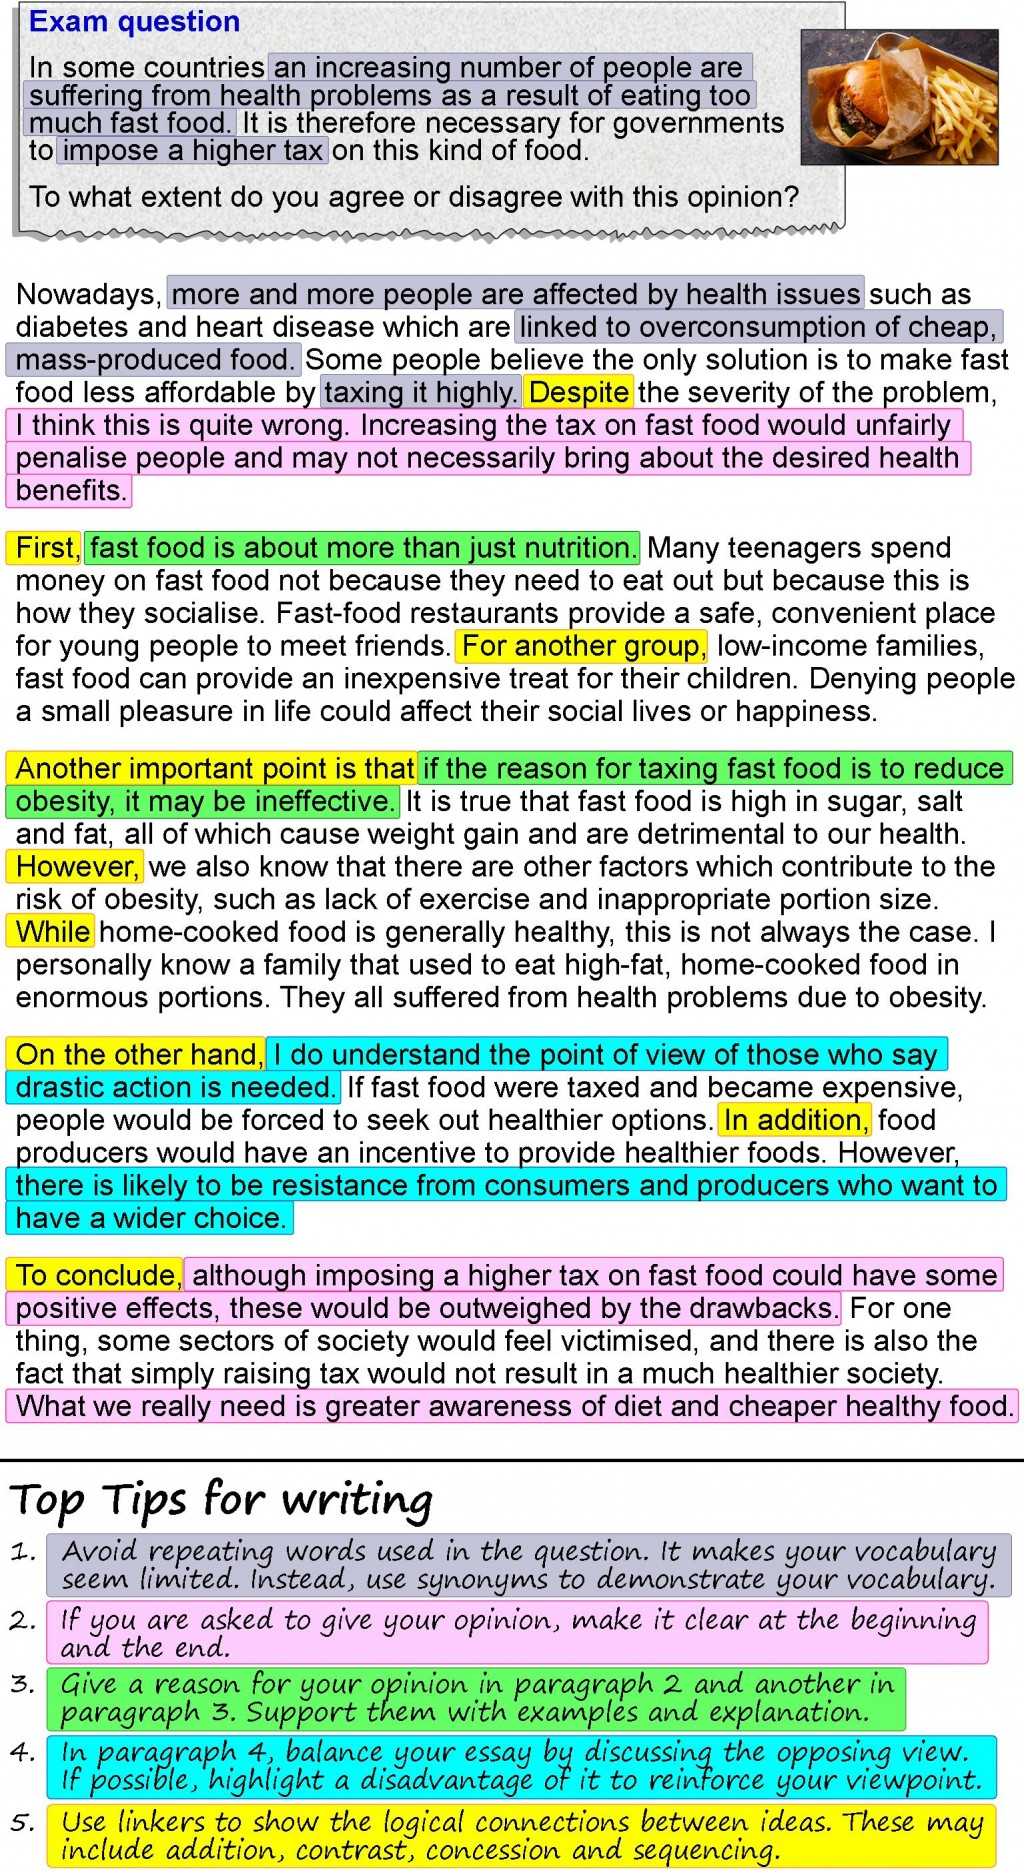 014 An Opinion Essay About Fast Food 4 How To Write Fascinating Academic English In Exam Large